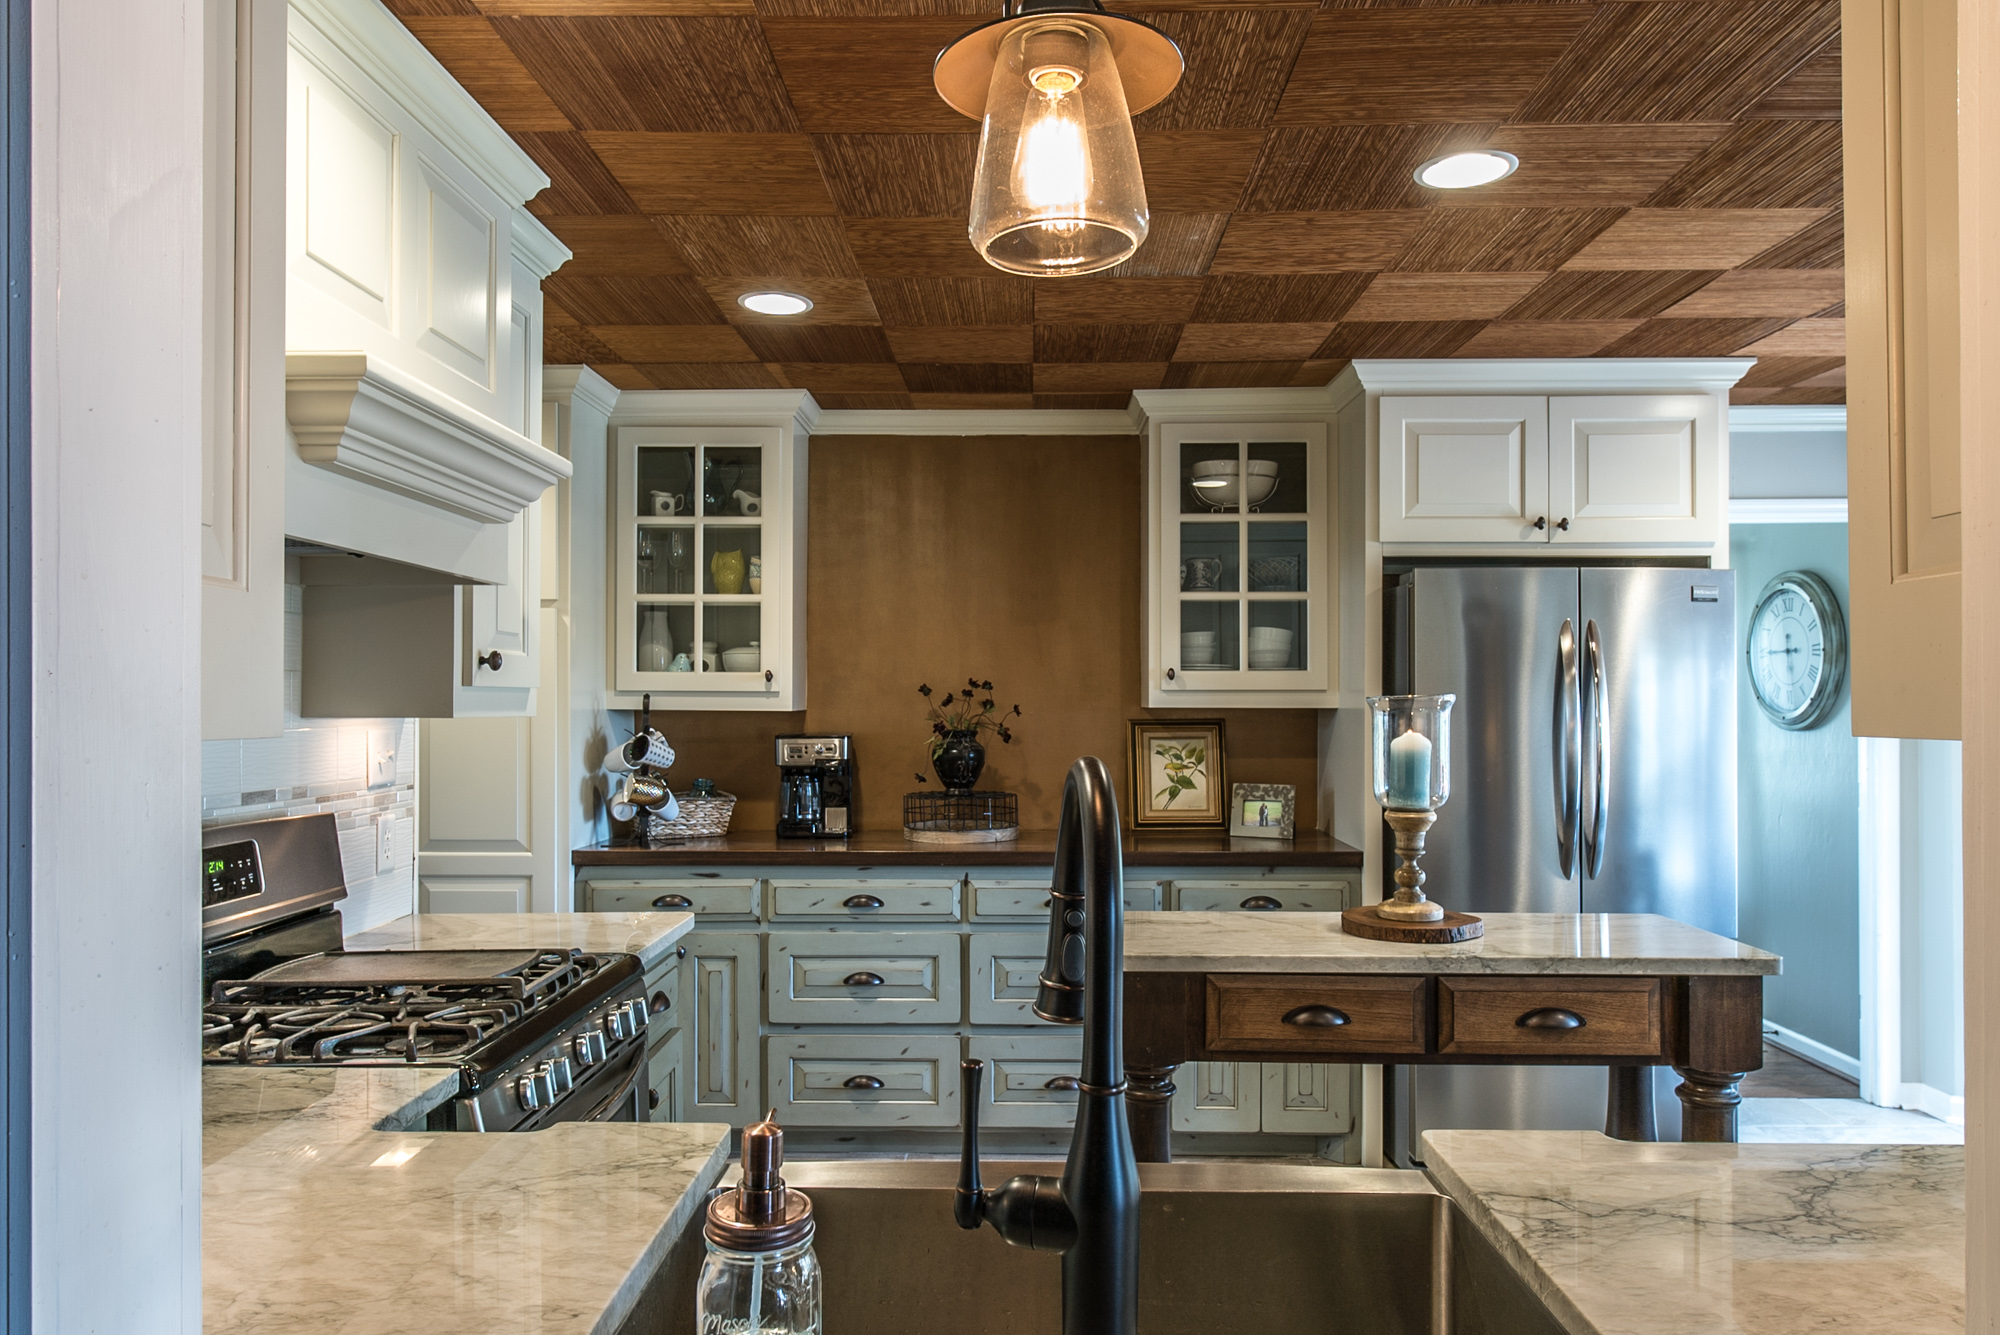 Sea Pearl Quartzite countertops contrasted by brown accent wall and ceiling tiles